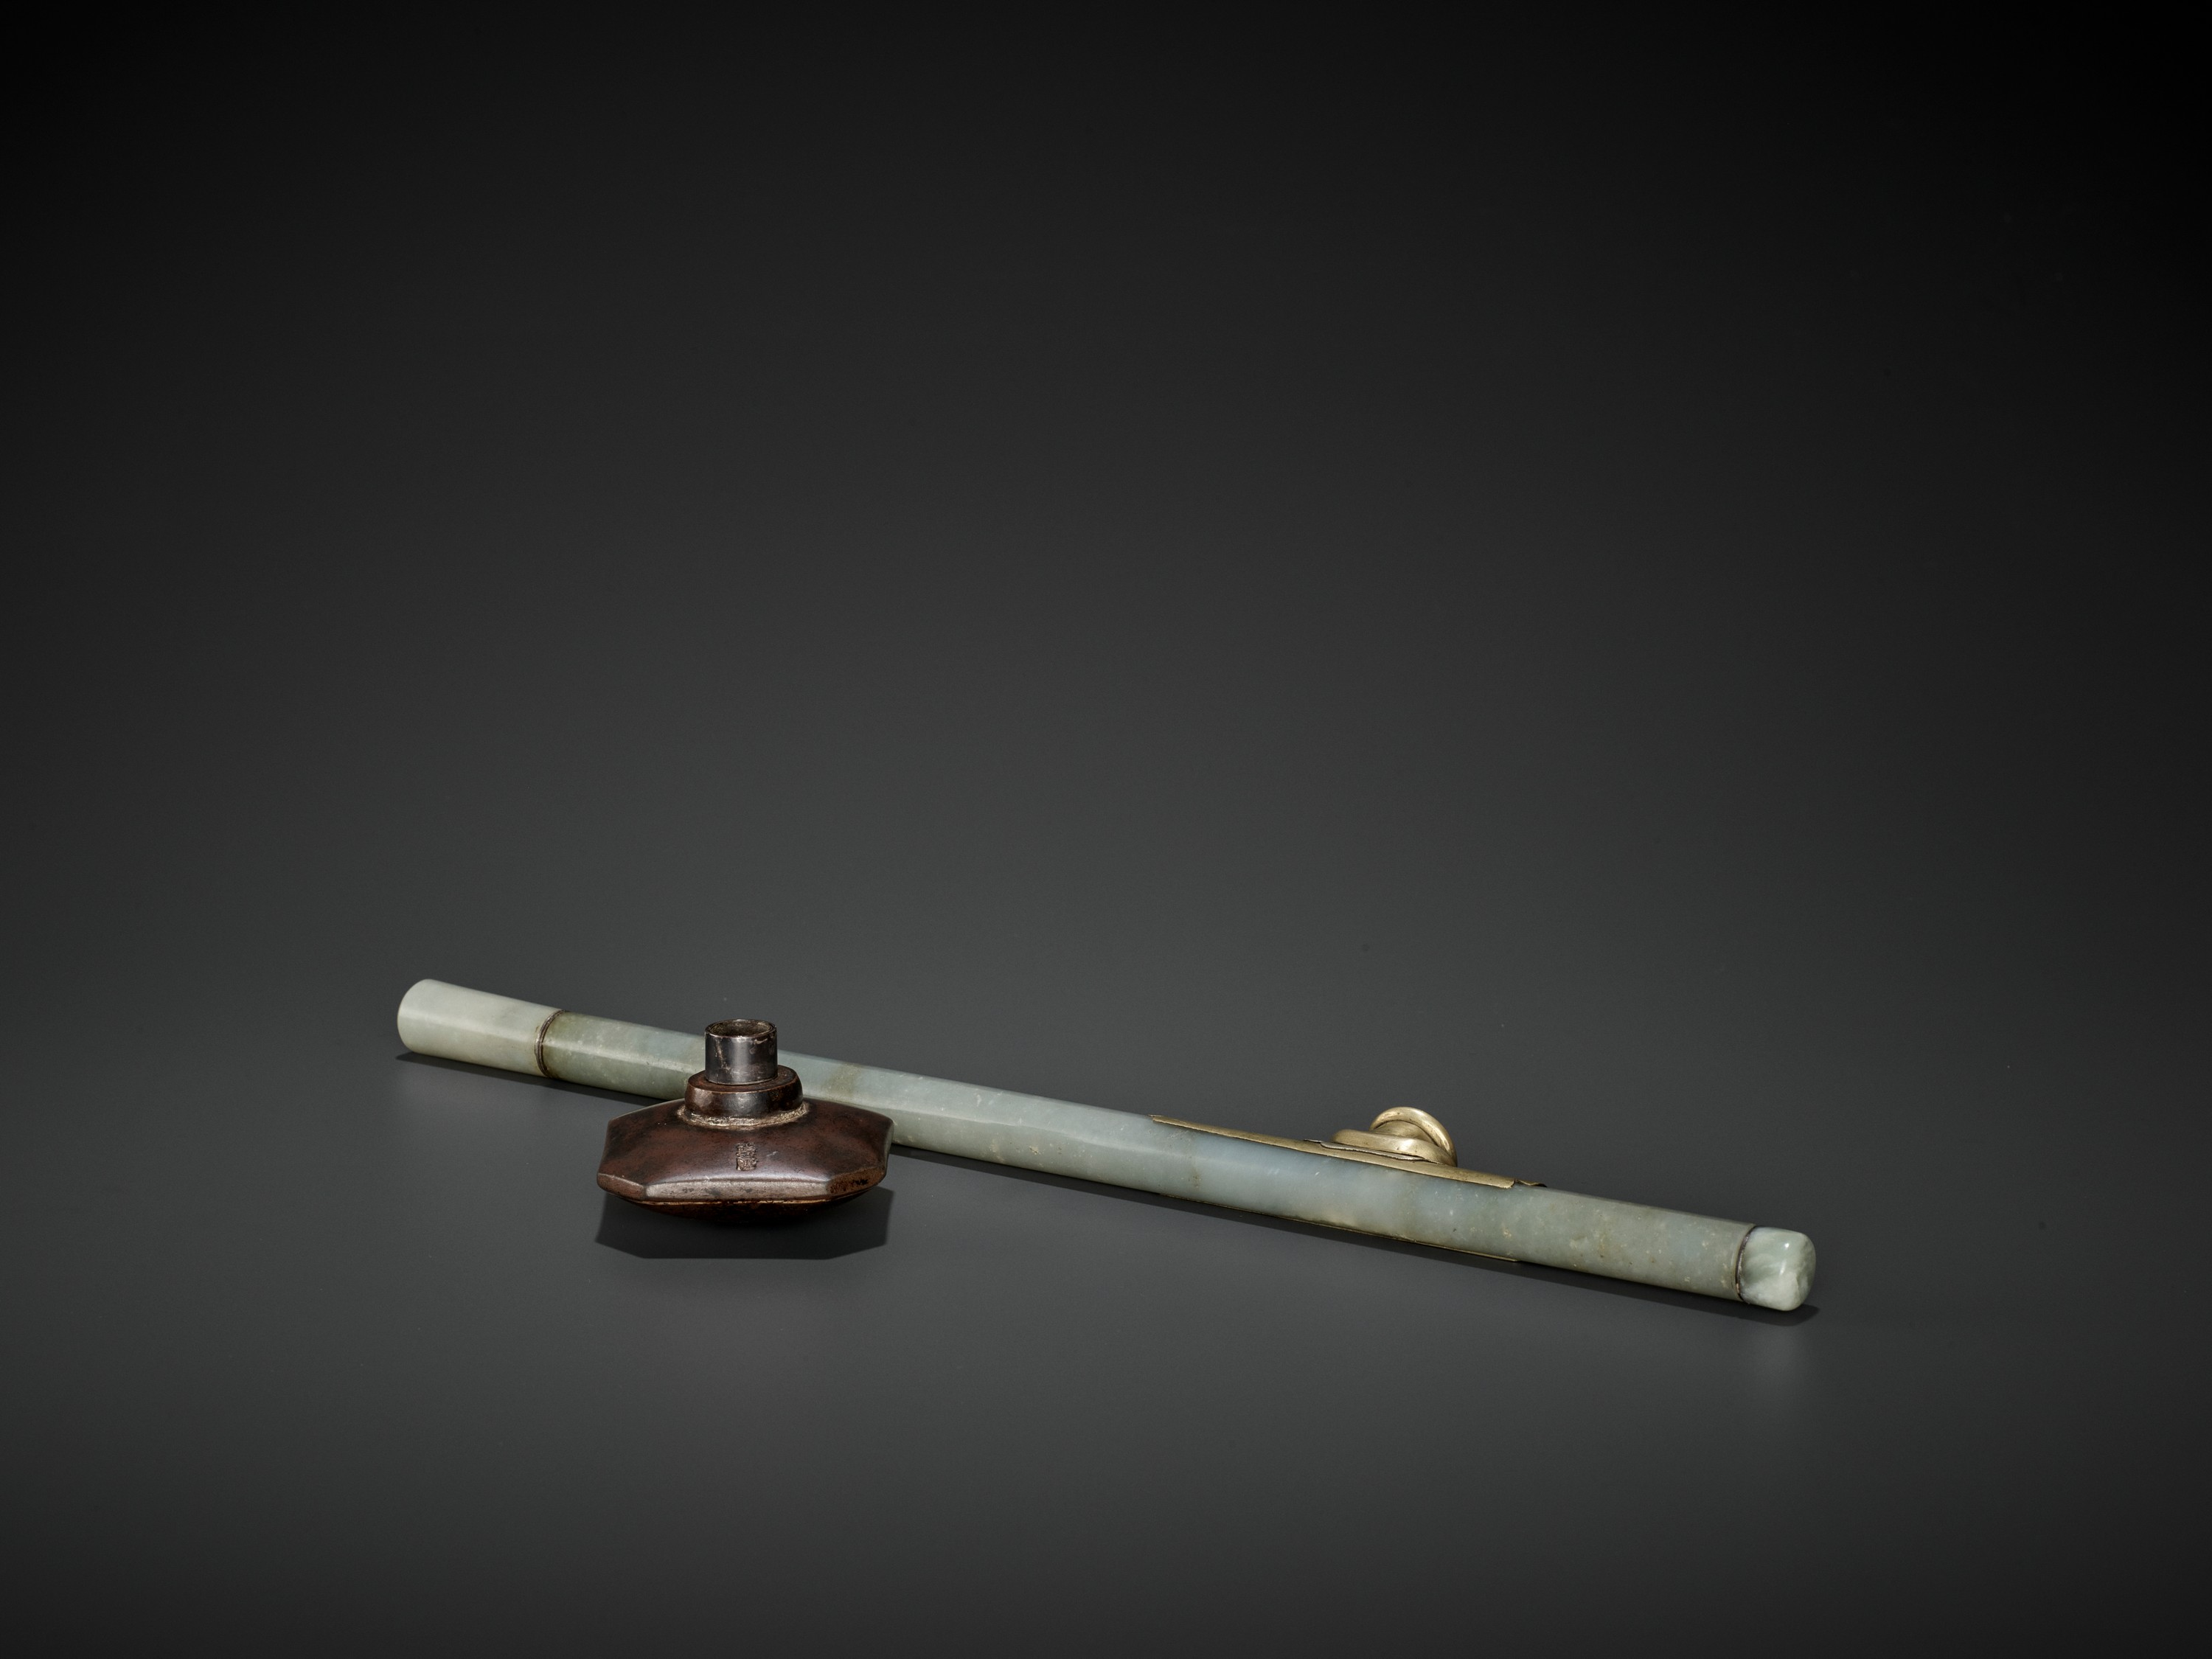 A JADE OPIUM PIPE, QING DYNASTY - Image 6 of 6